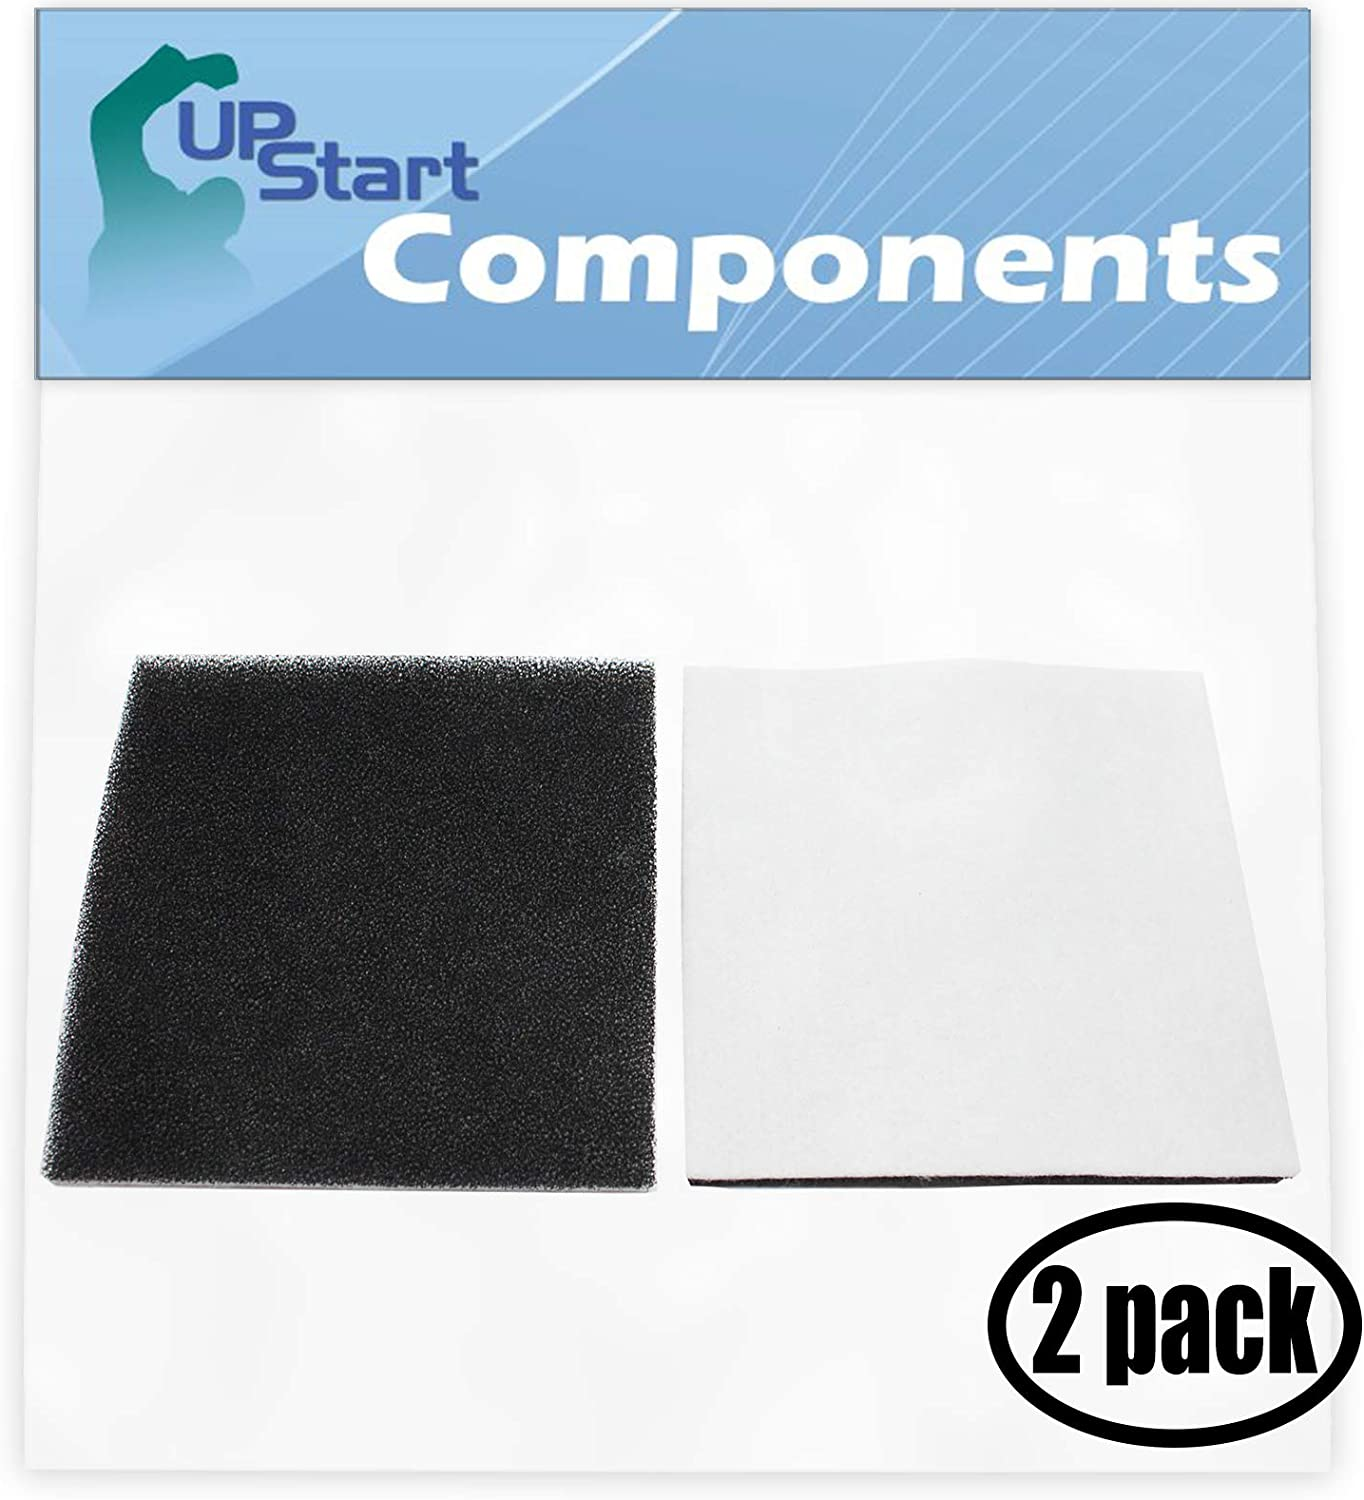 2-Pack Replacement CF-1 Filter 86883 with 1 Micro Vacuum Attachment Kit for Kenmore, Panasonic - Compatible with Kenmore CF-1, Kenmore 20-86883, Kenmore 86883, Kenmore 2086883, Kenmore 4370616, Kenmore 8175084, Kenmore 20-40321, Kenmore 2040321, Kenmore 40321, Kenmore 610461, Kenmore 11620612003, Kenmore 11622313200, Kenmore 11624212401